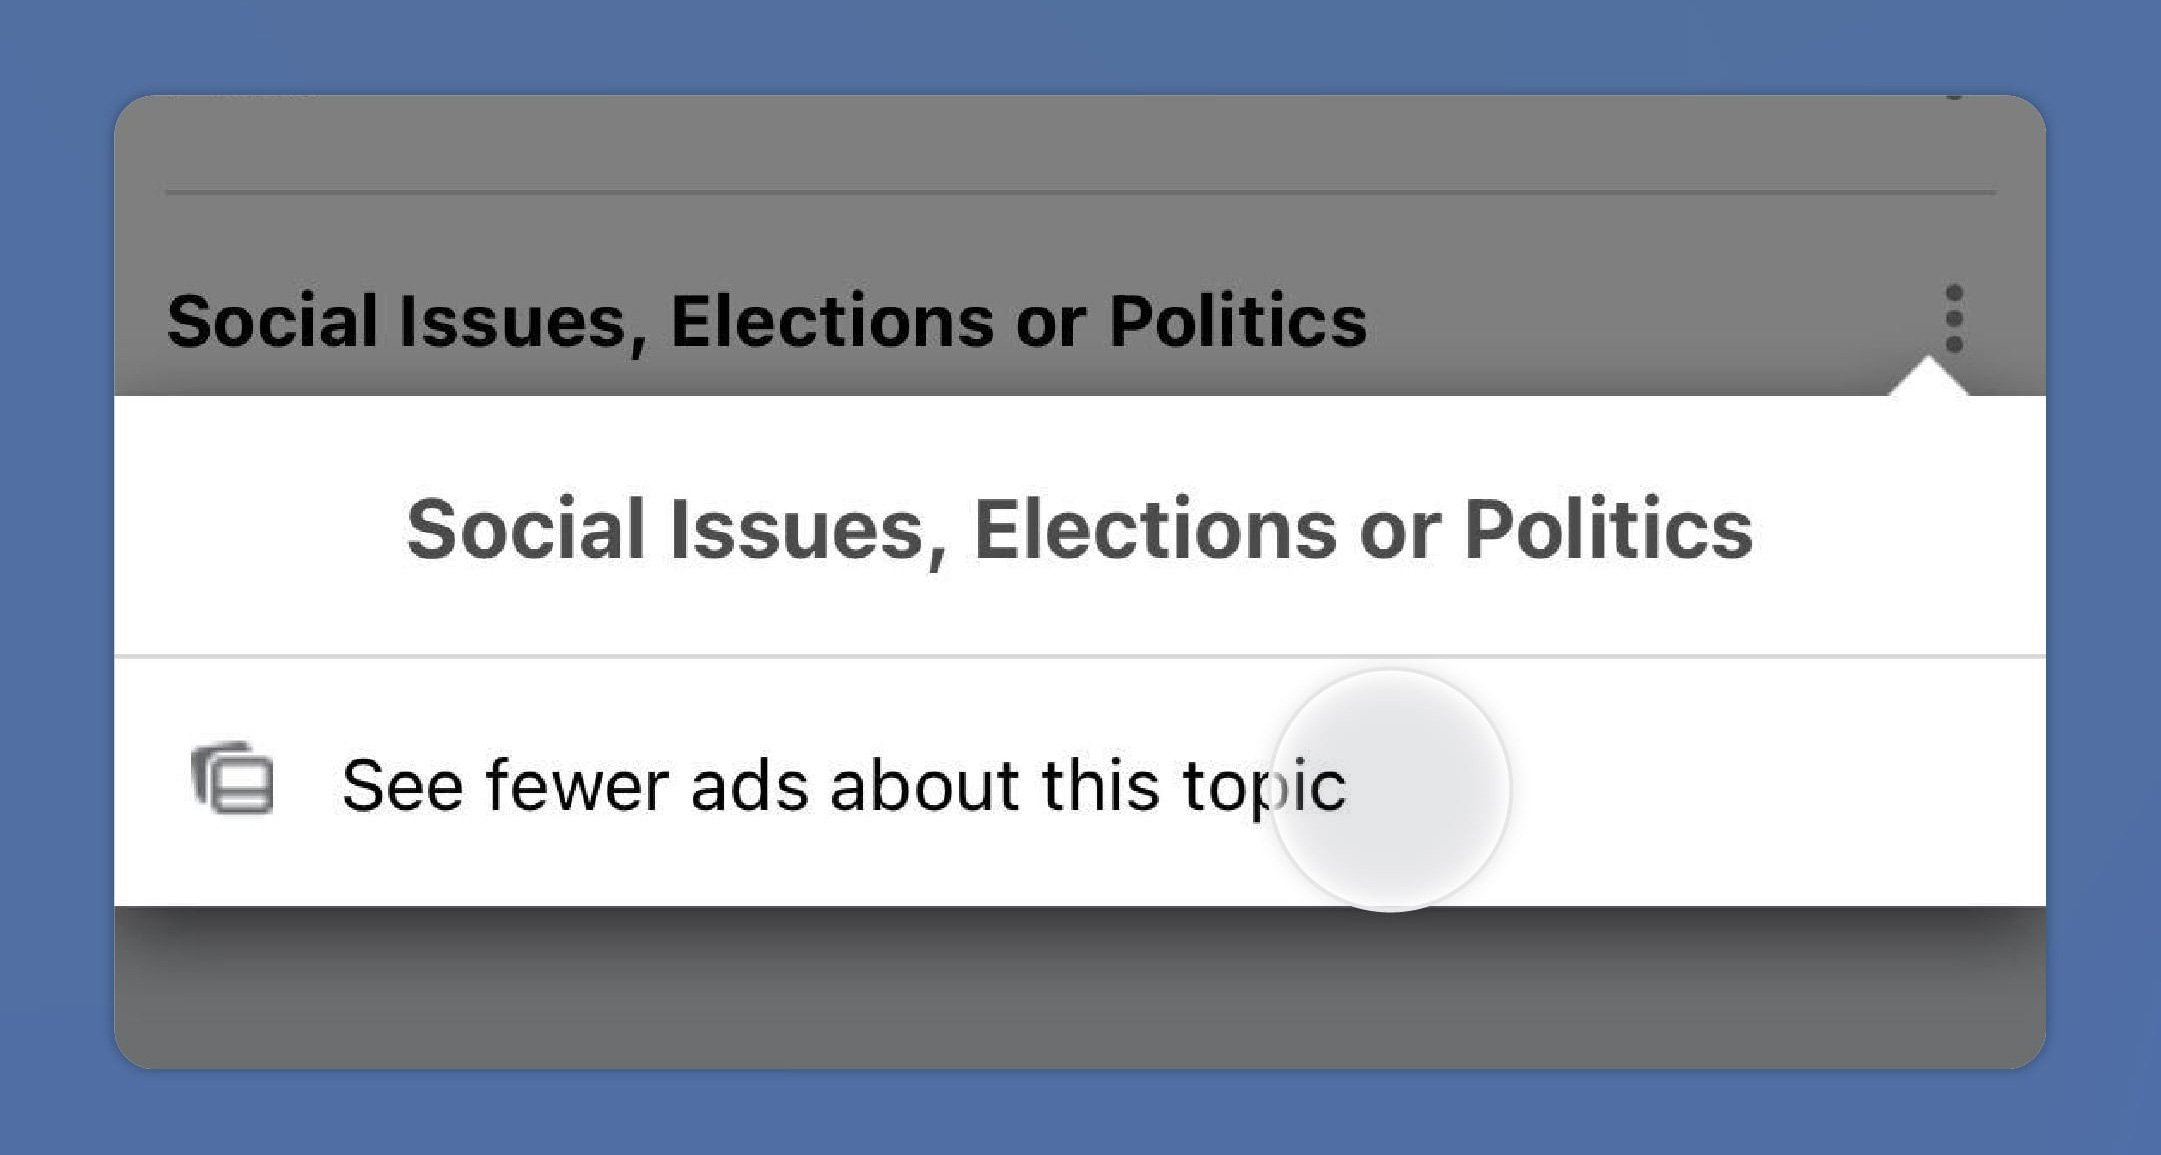 See fewer ads about this topic.